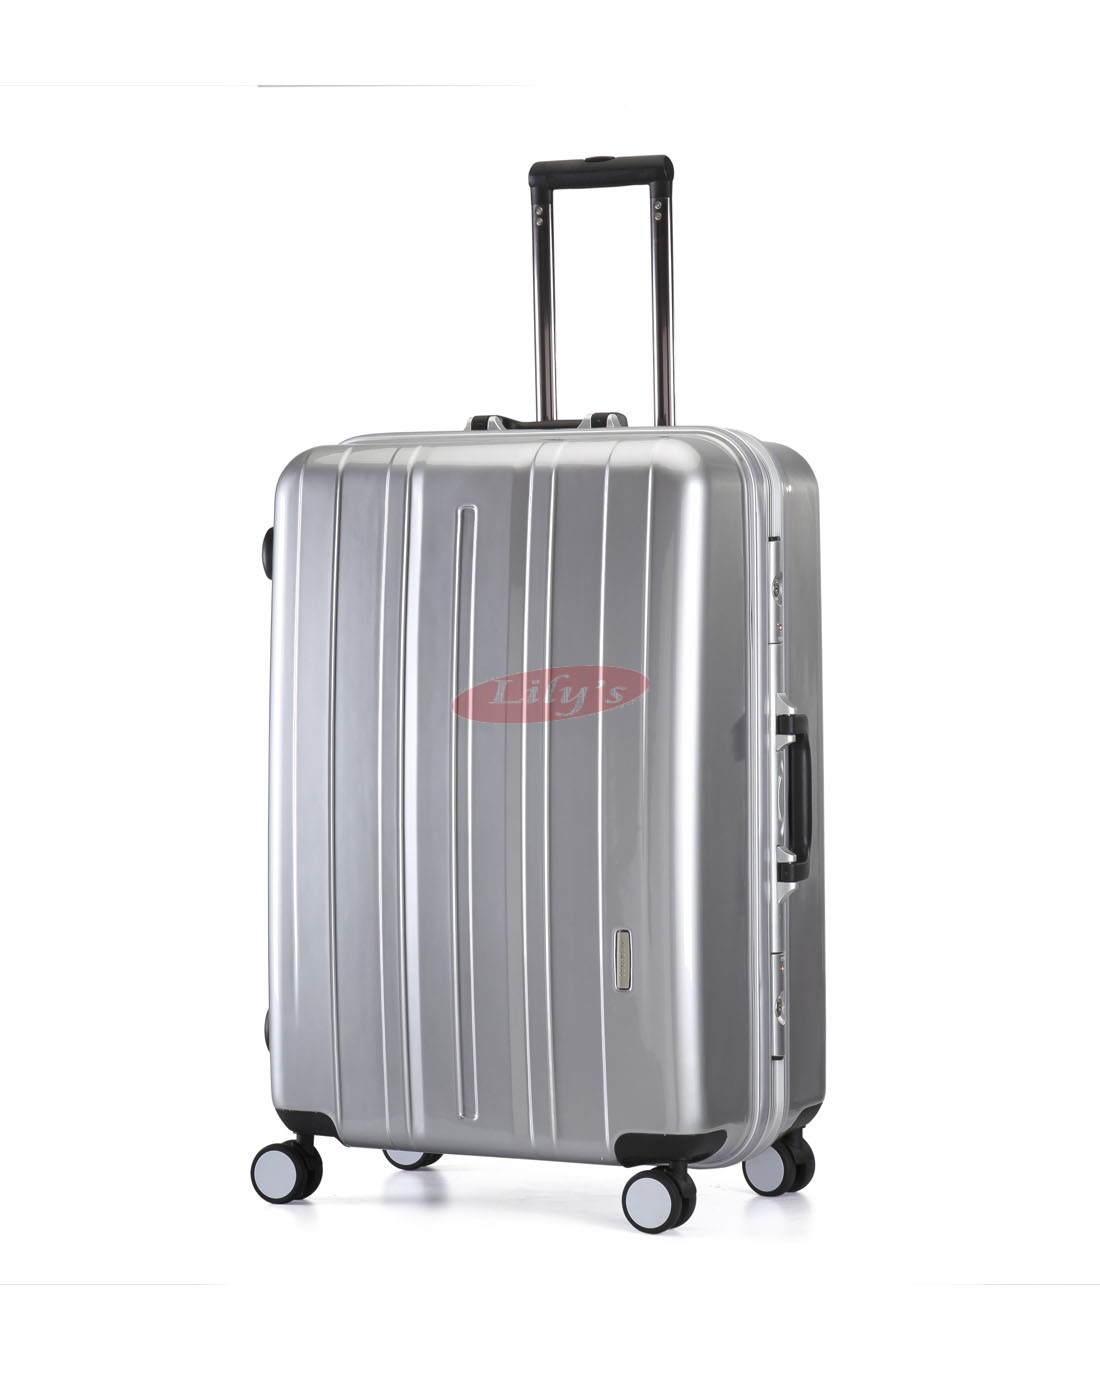 AIRCROSS Luggage SLK10 Silver Hard Case Trolley Luggage - 28""